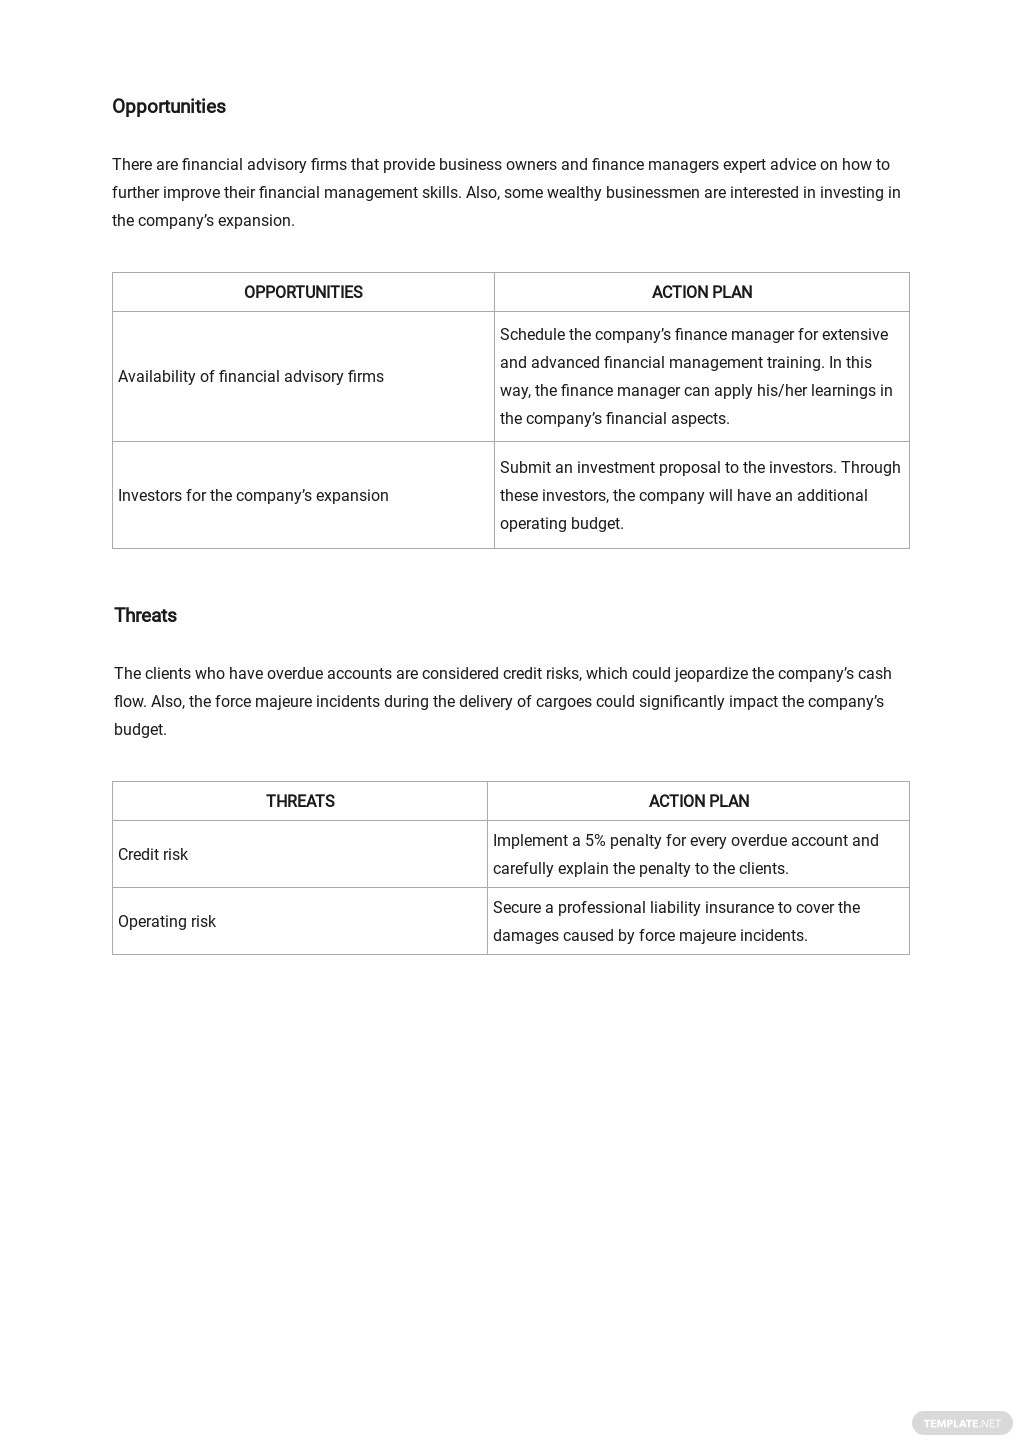 Financial SWOT Analysis Template [Free PDF] - Google Docs, Word, Apple Pages